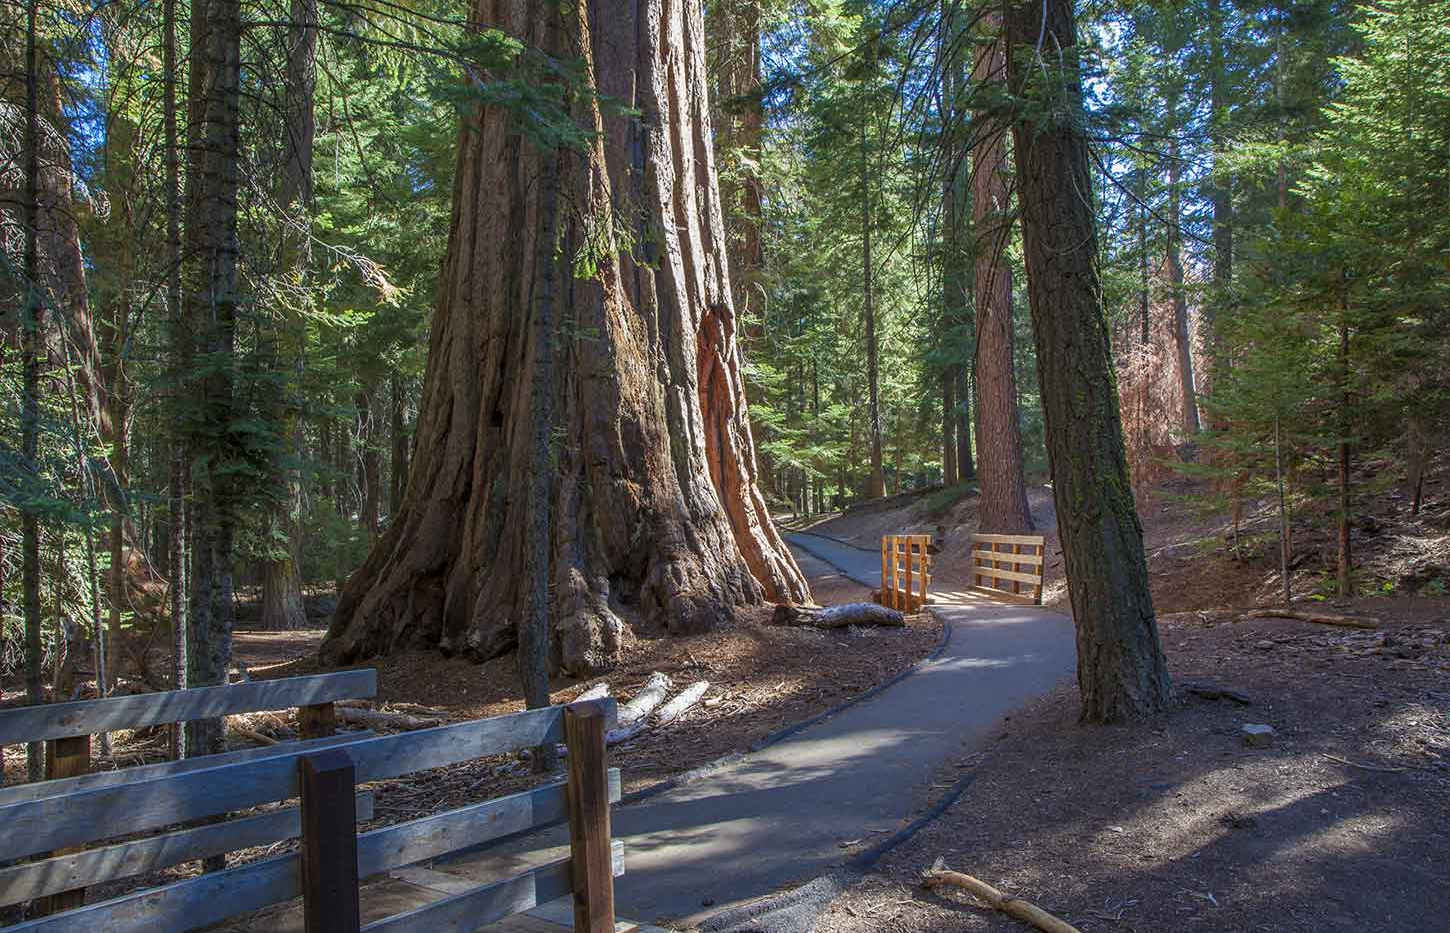 The Trail of 100 Giants is Fully Accessible